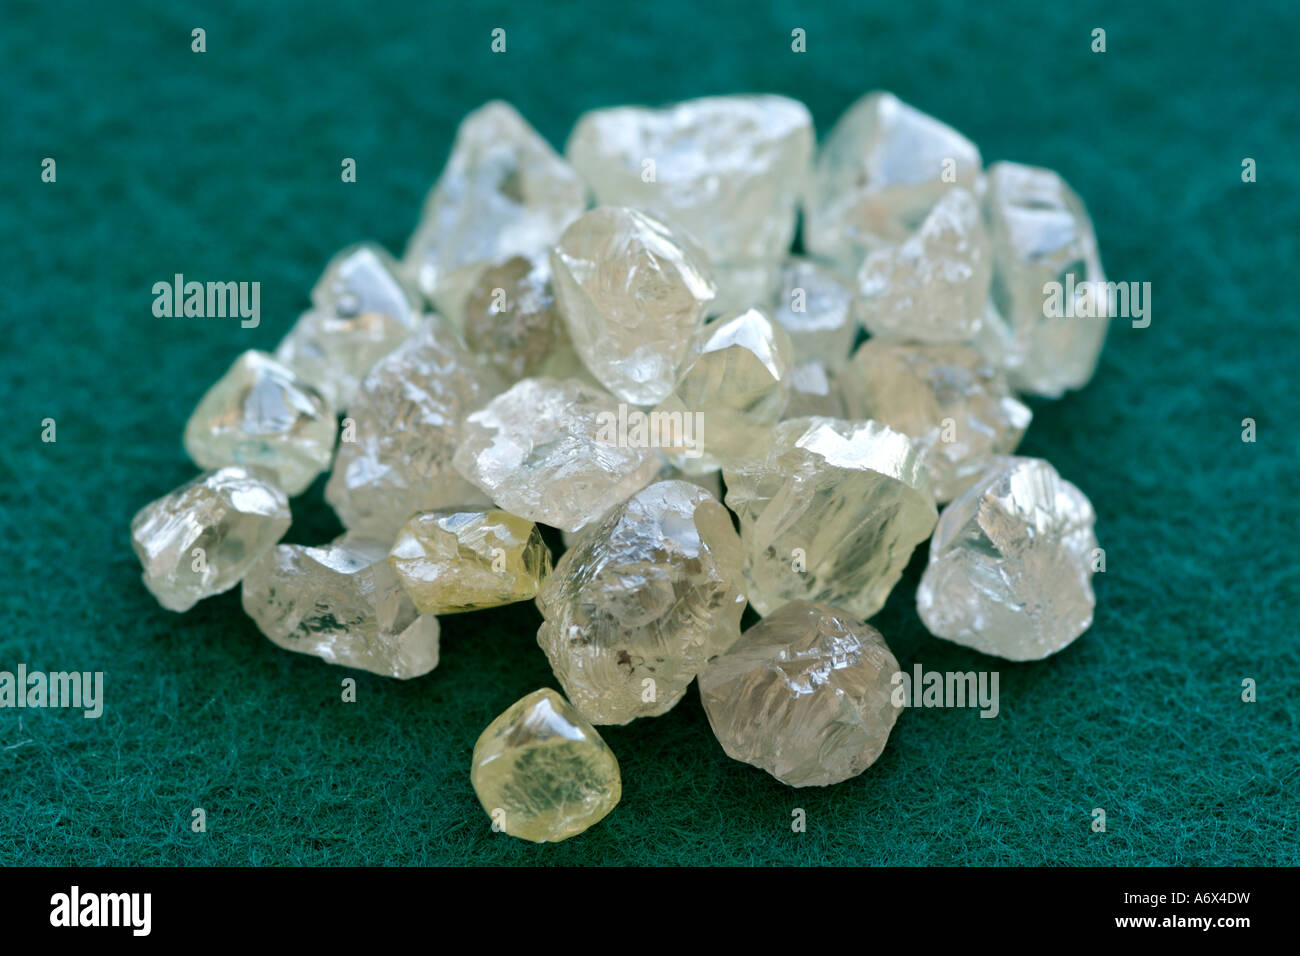 Uncut diamonds in the sorting room at De Beers Diamond Trading Company in Harry Oppenheimer House in Kimberley, - Stock Image